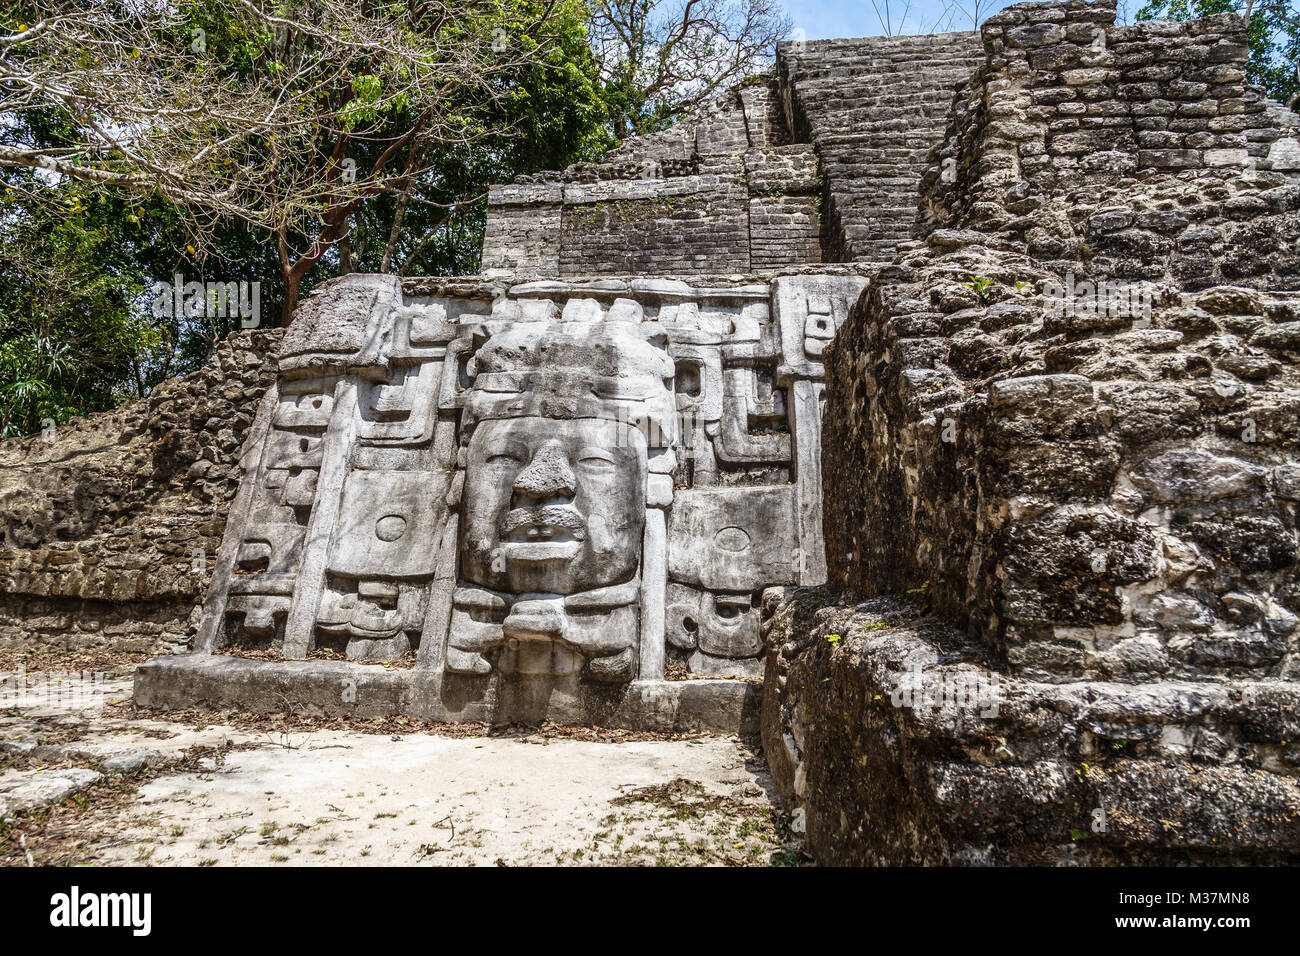 Old ancient stone Mayan pre-columbian civilization pyramid with carved face and ornament hidden in the forest, Lamanai - Stock Image